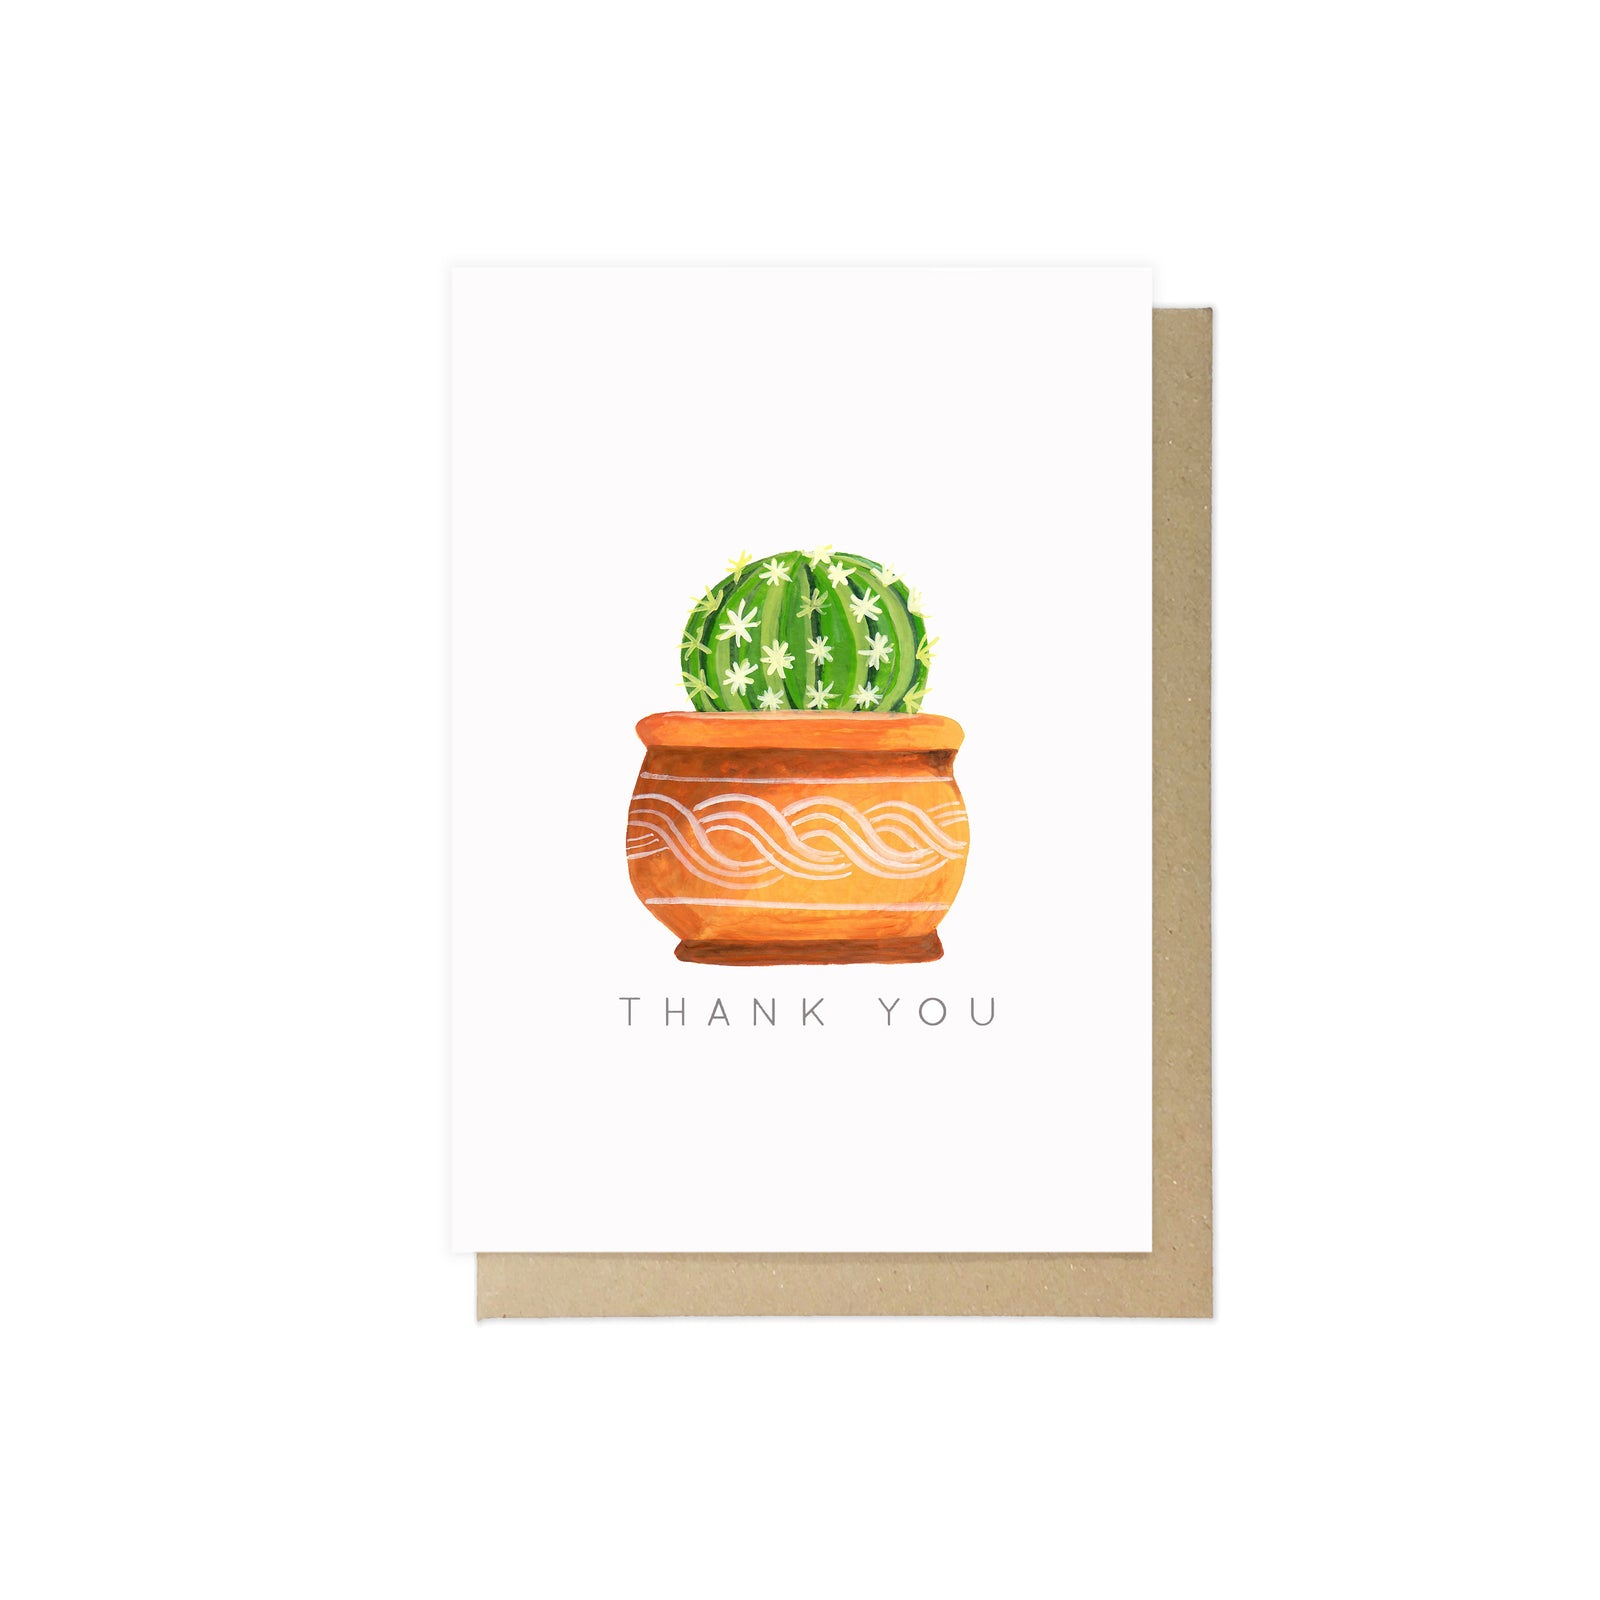 Cactus - Thank you by Lauren Radley